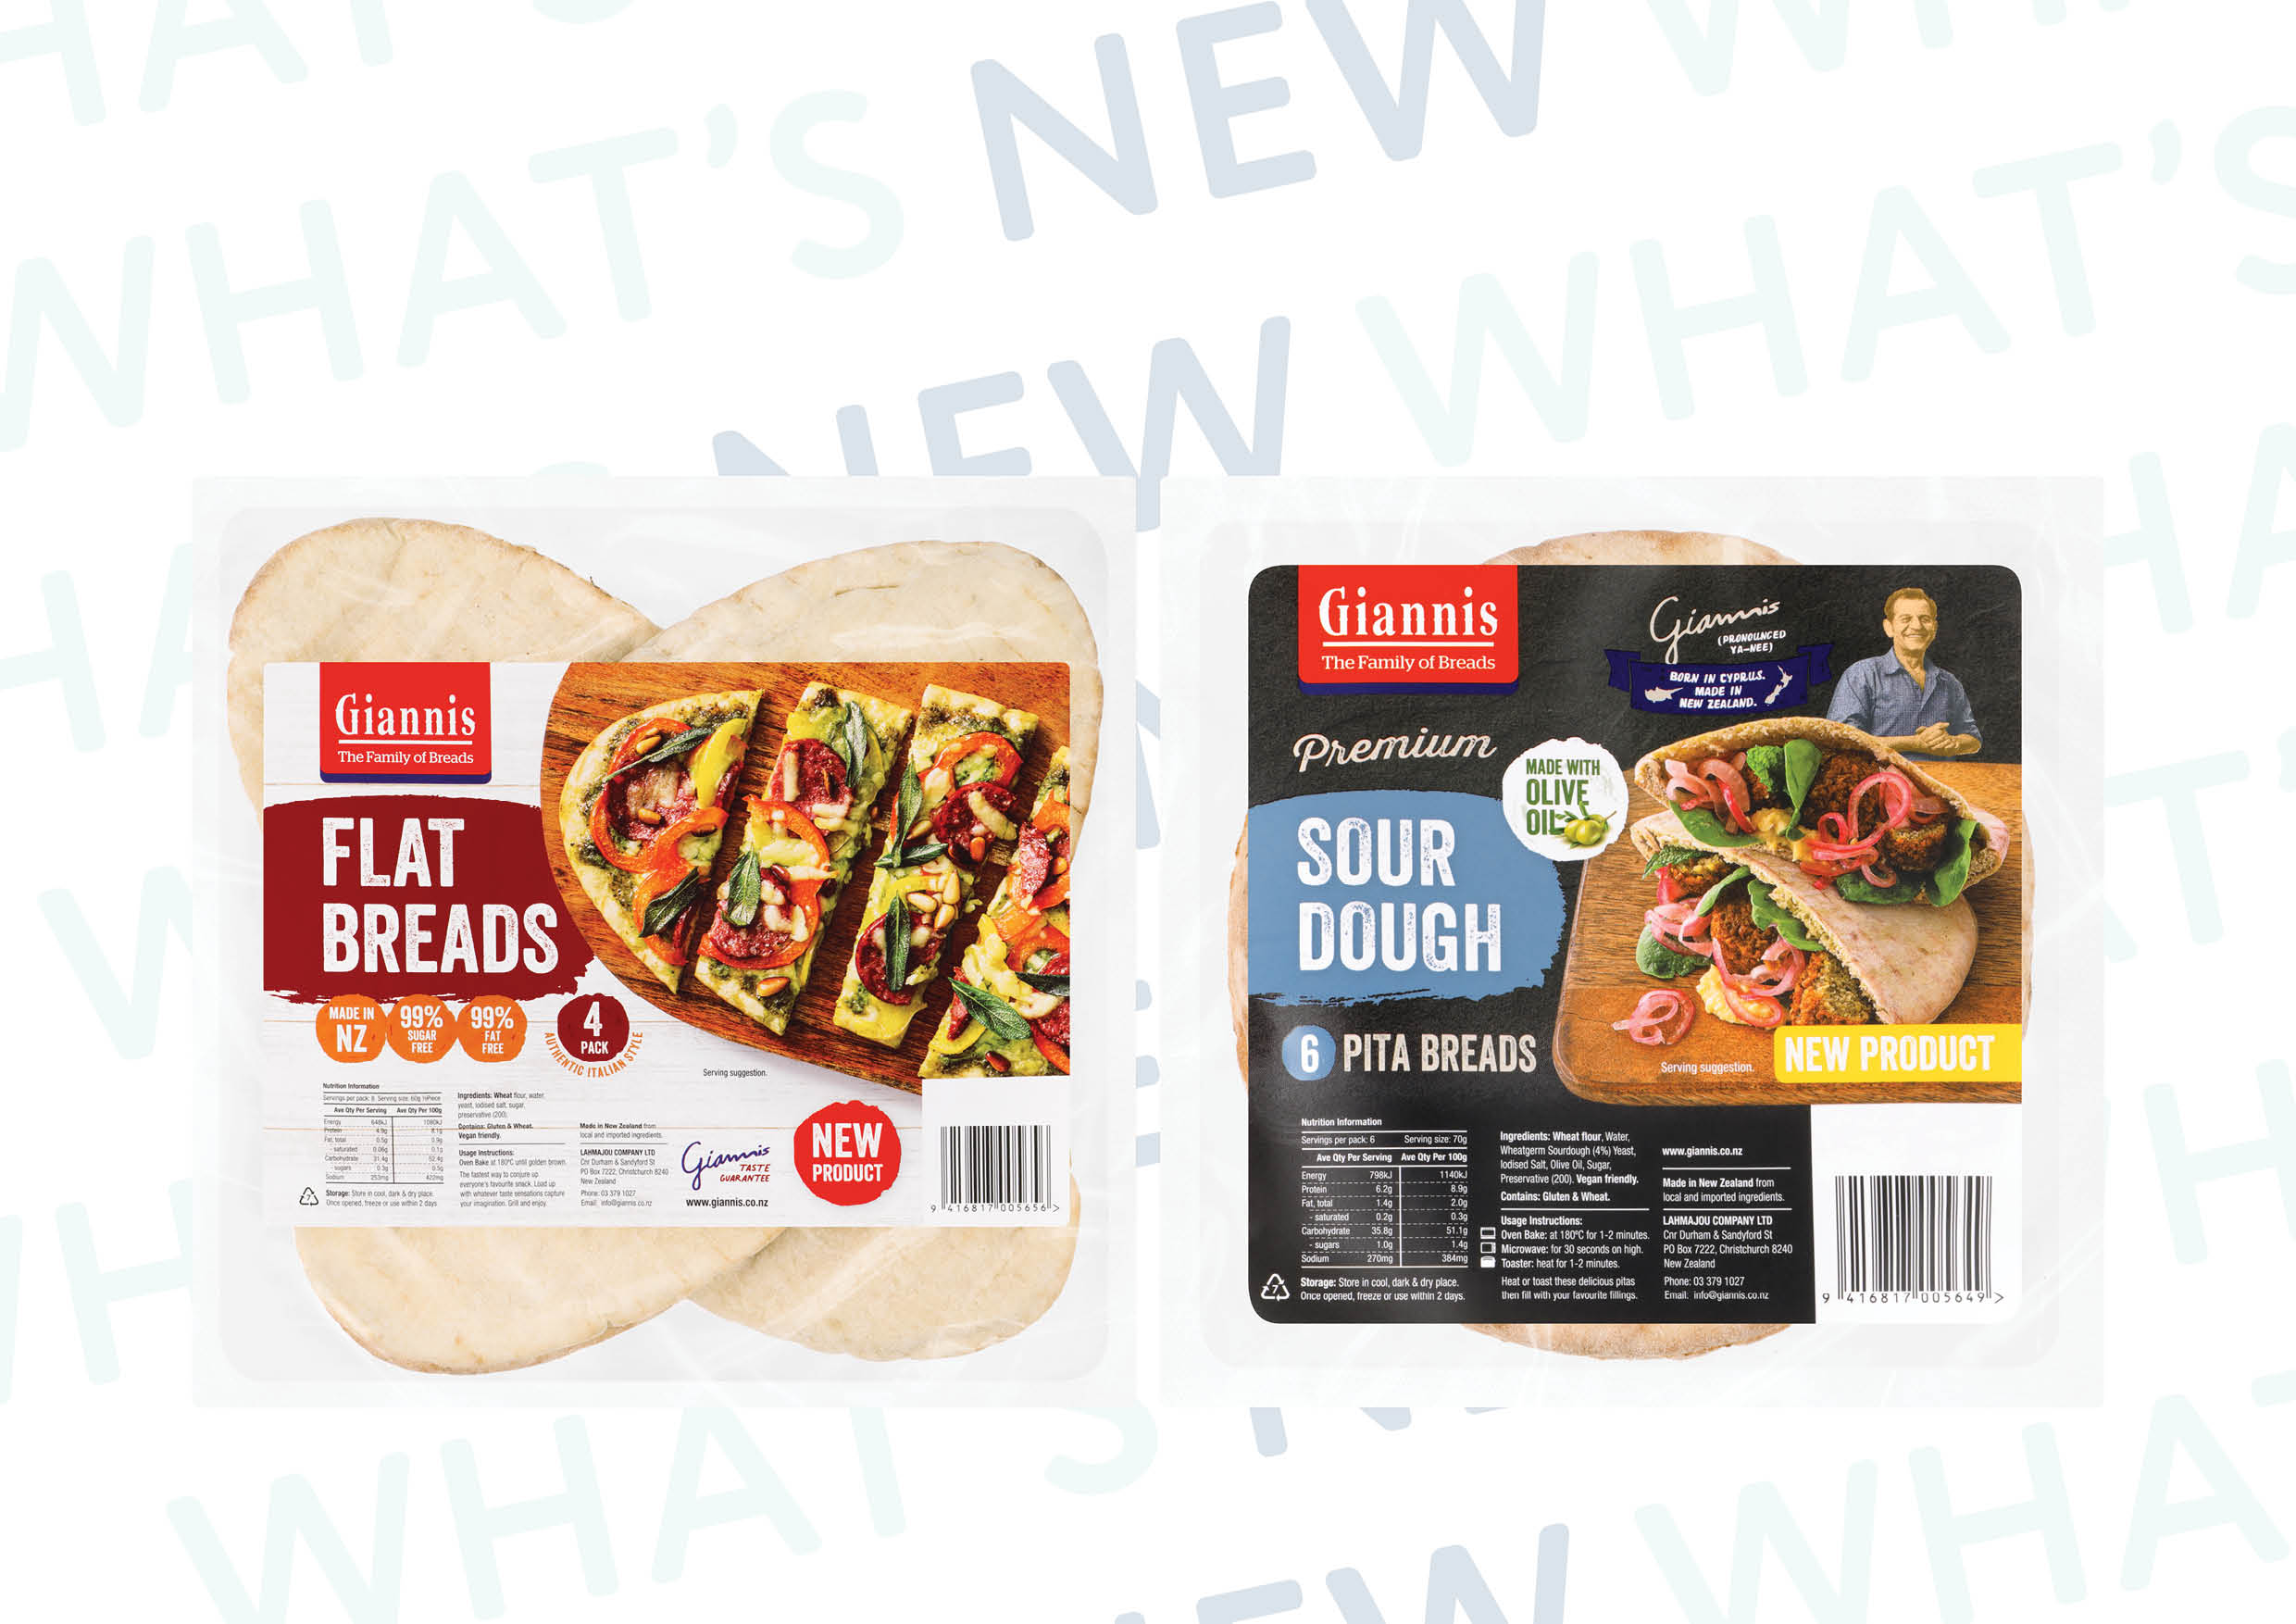 New Pita Bread Innovation from Giannis